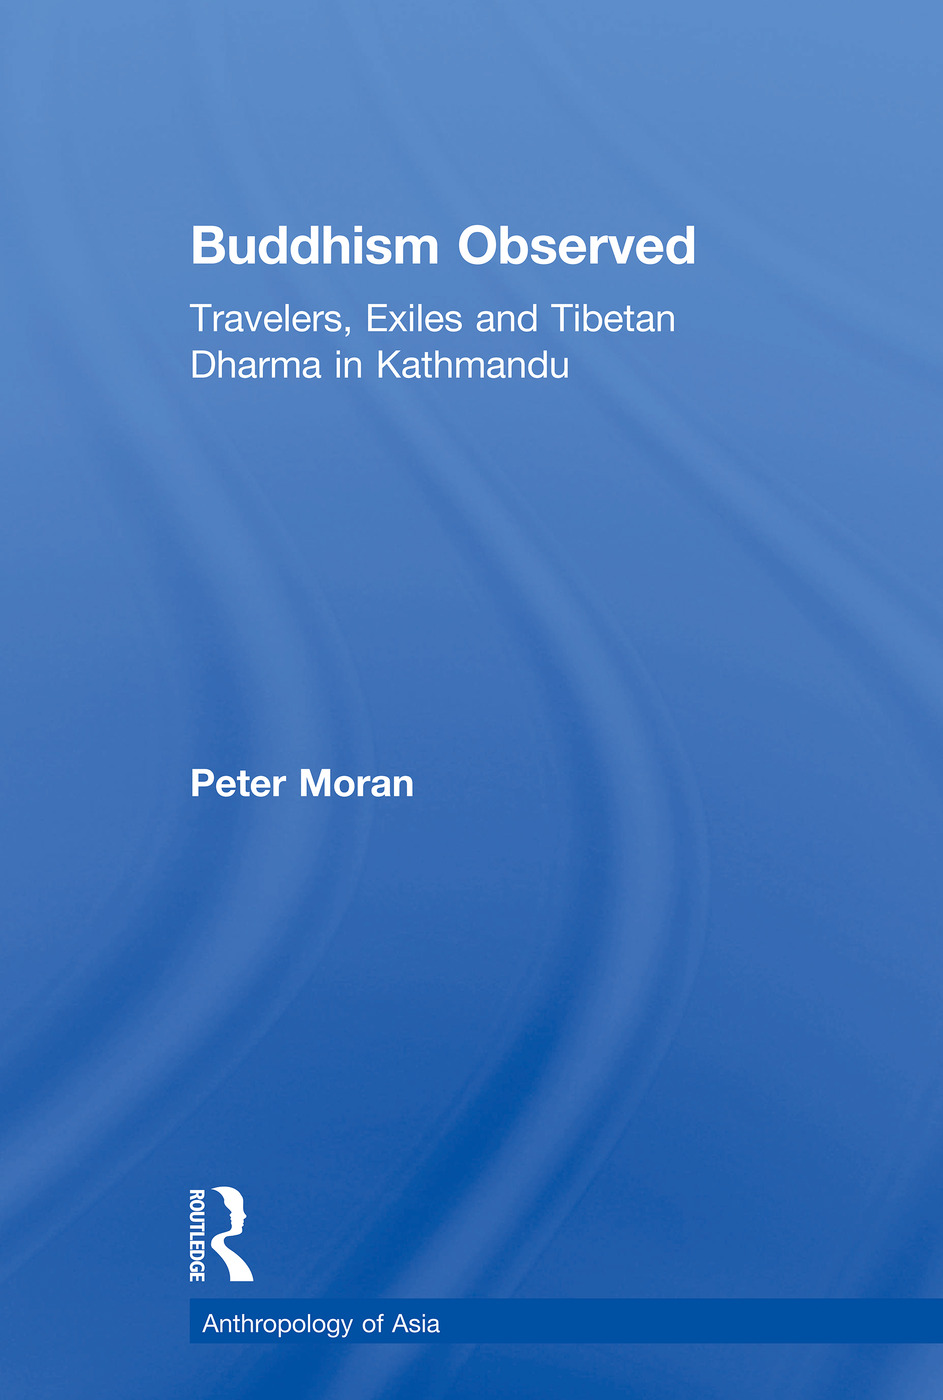 Buddhism Observed: Travellers, Exiles and Tibetan Dharma in Kathmandu book cover